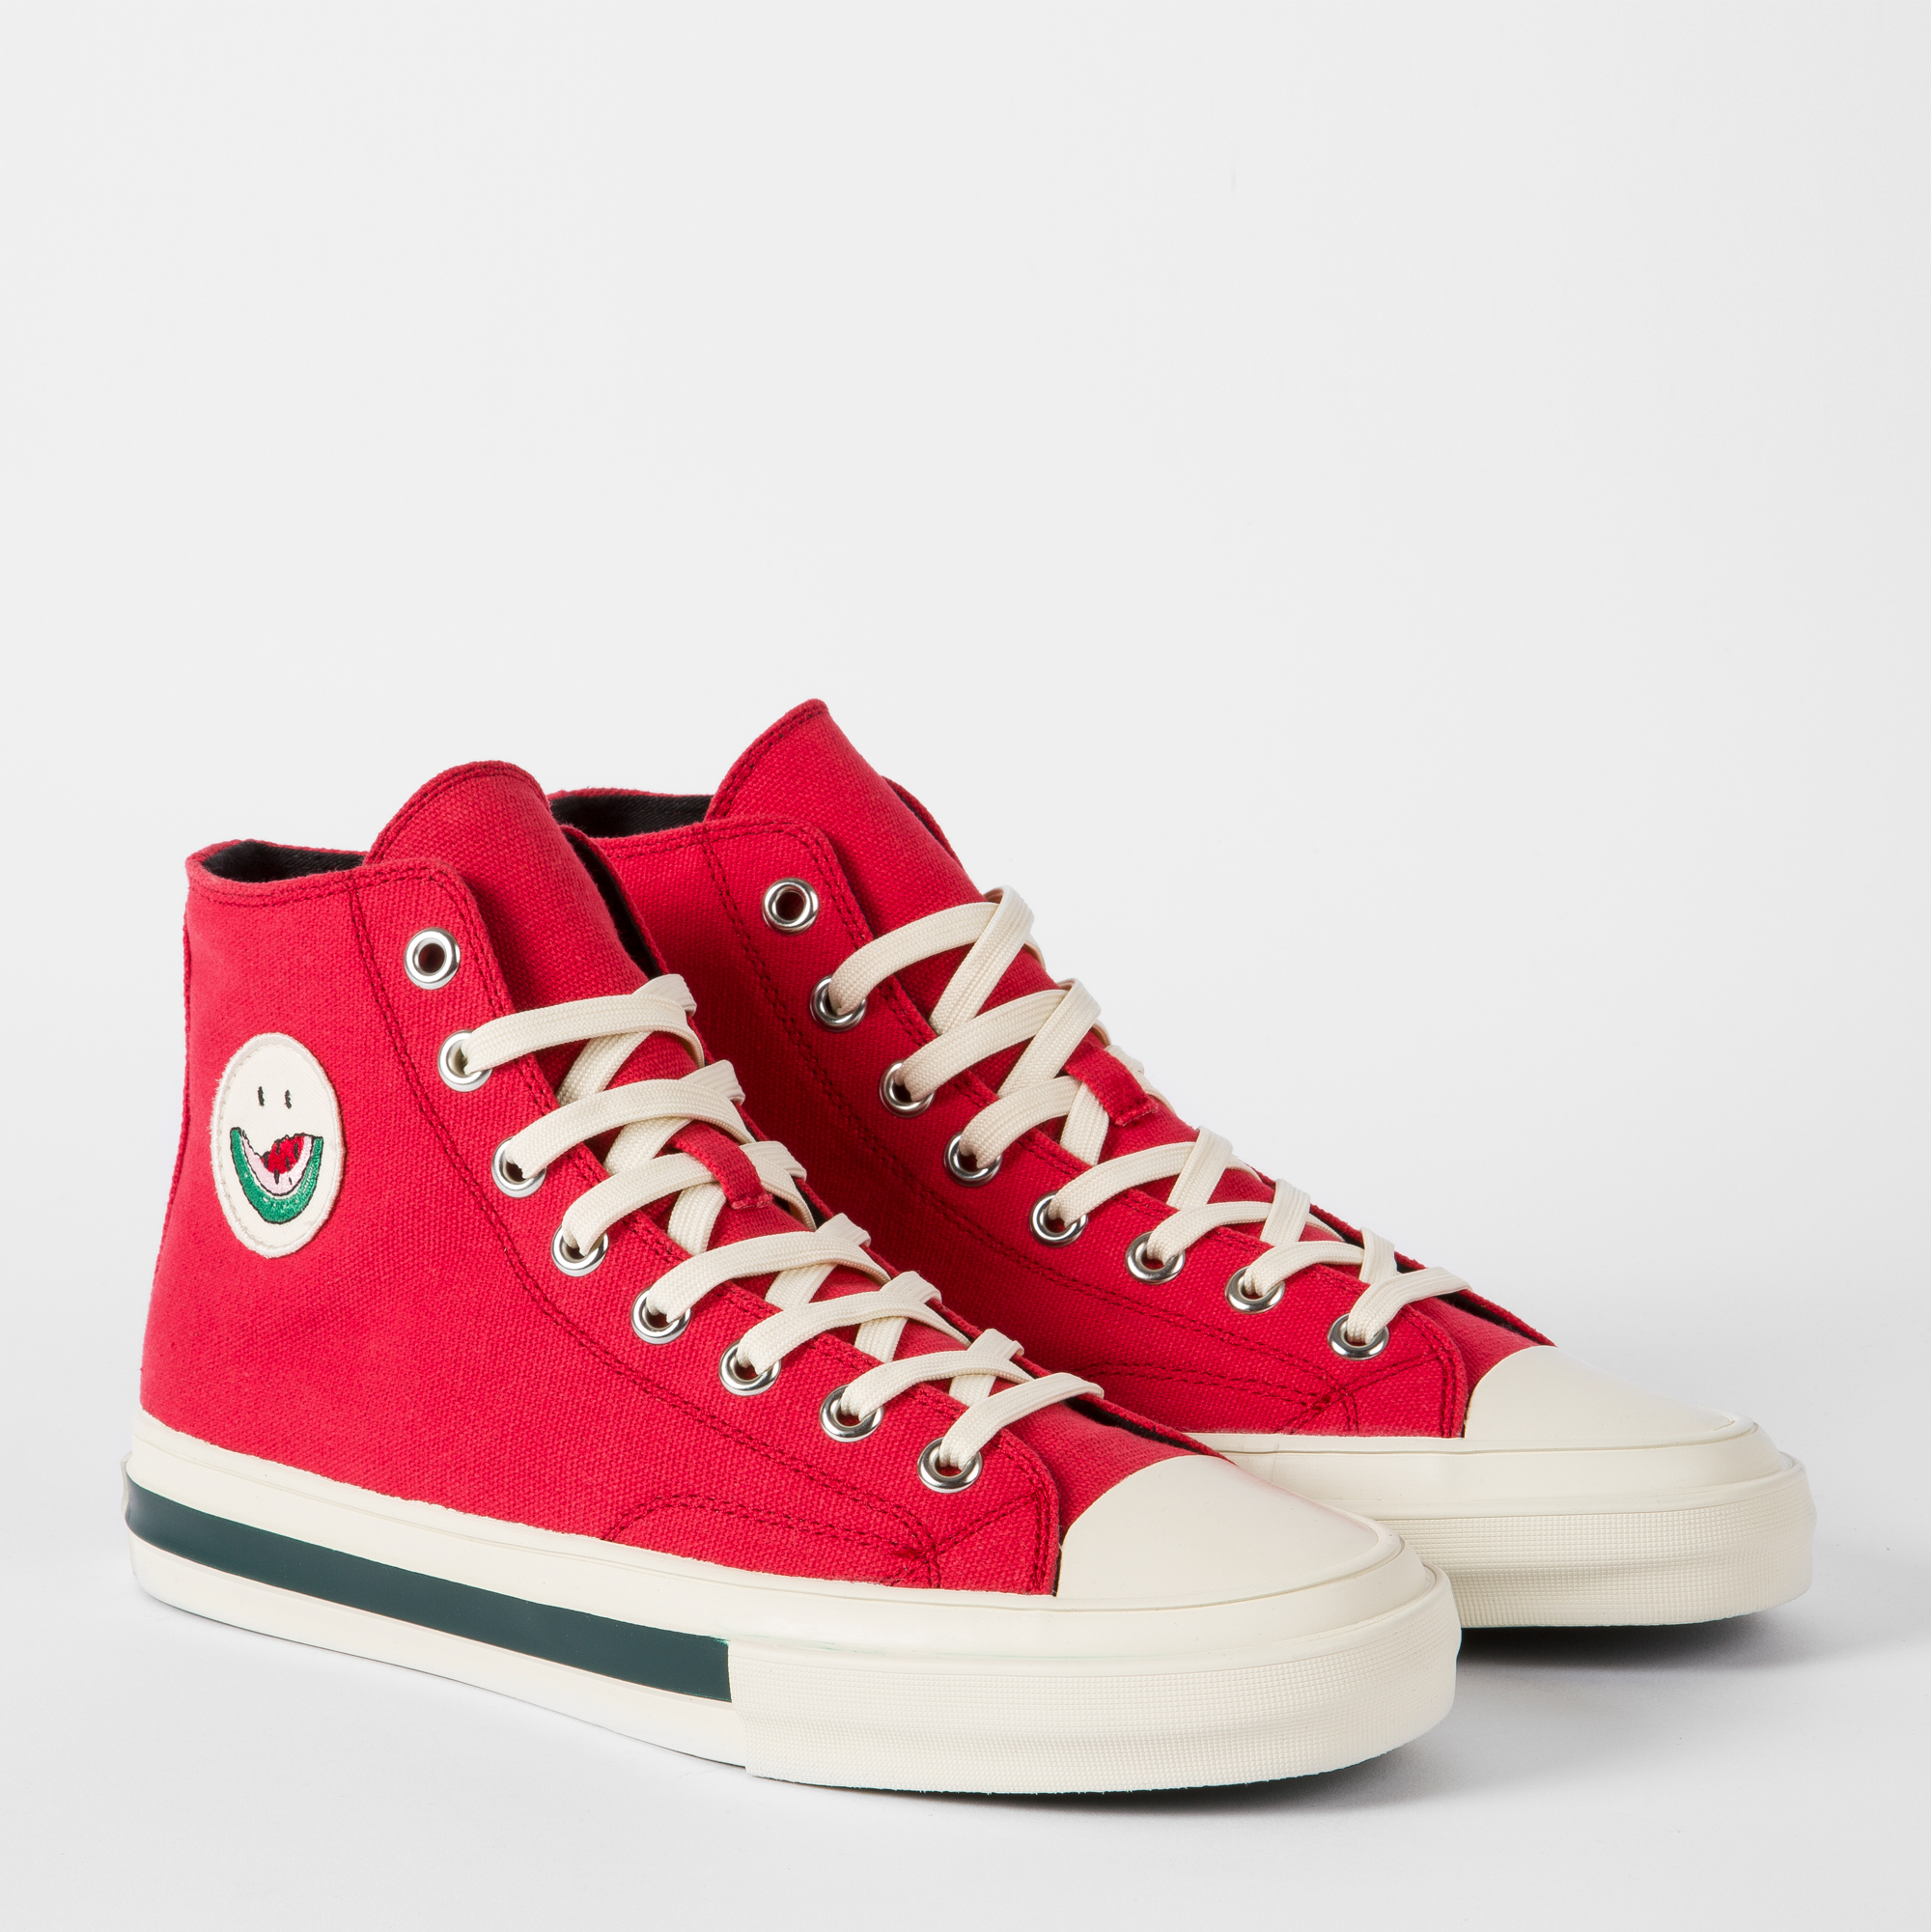 Paul Smith Men's Red Cotton-Canvas 'Kirk' Trainers